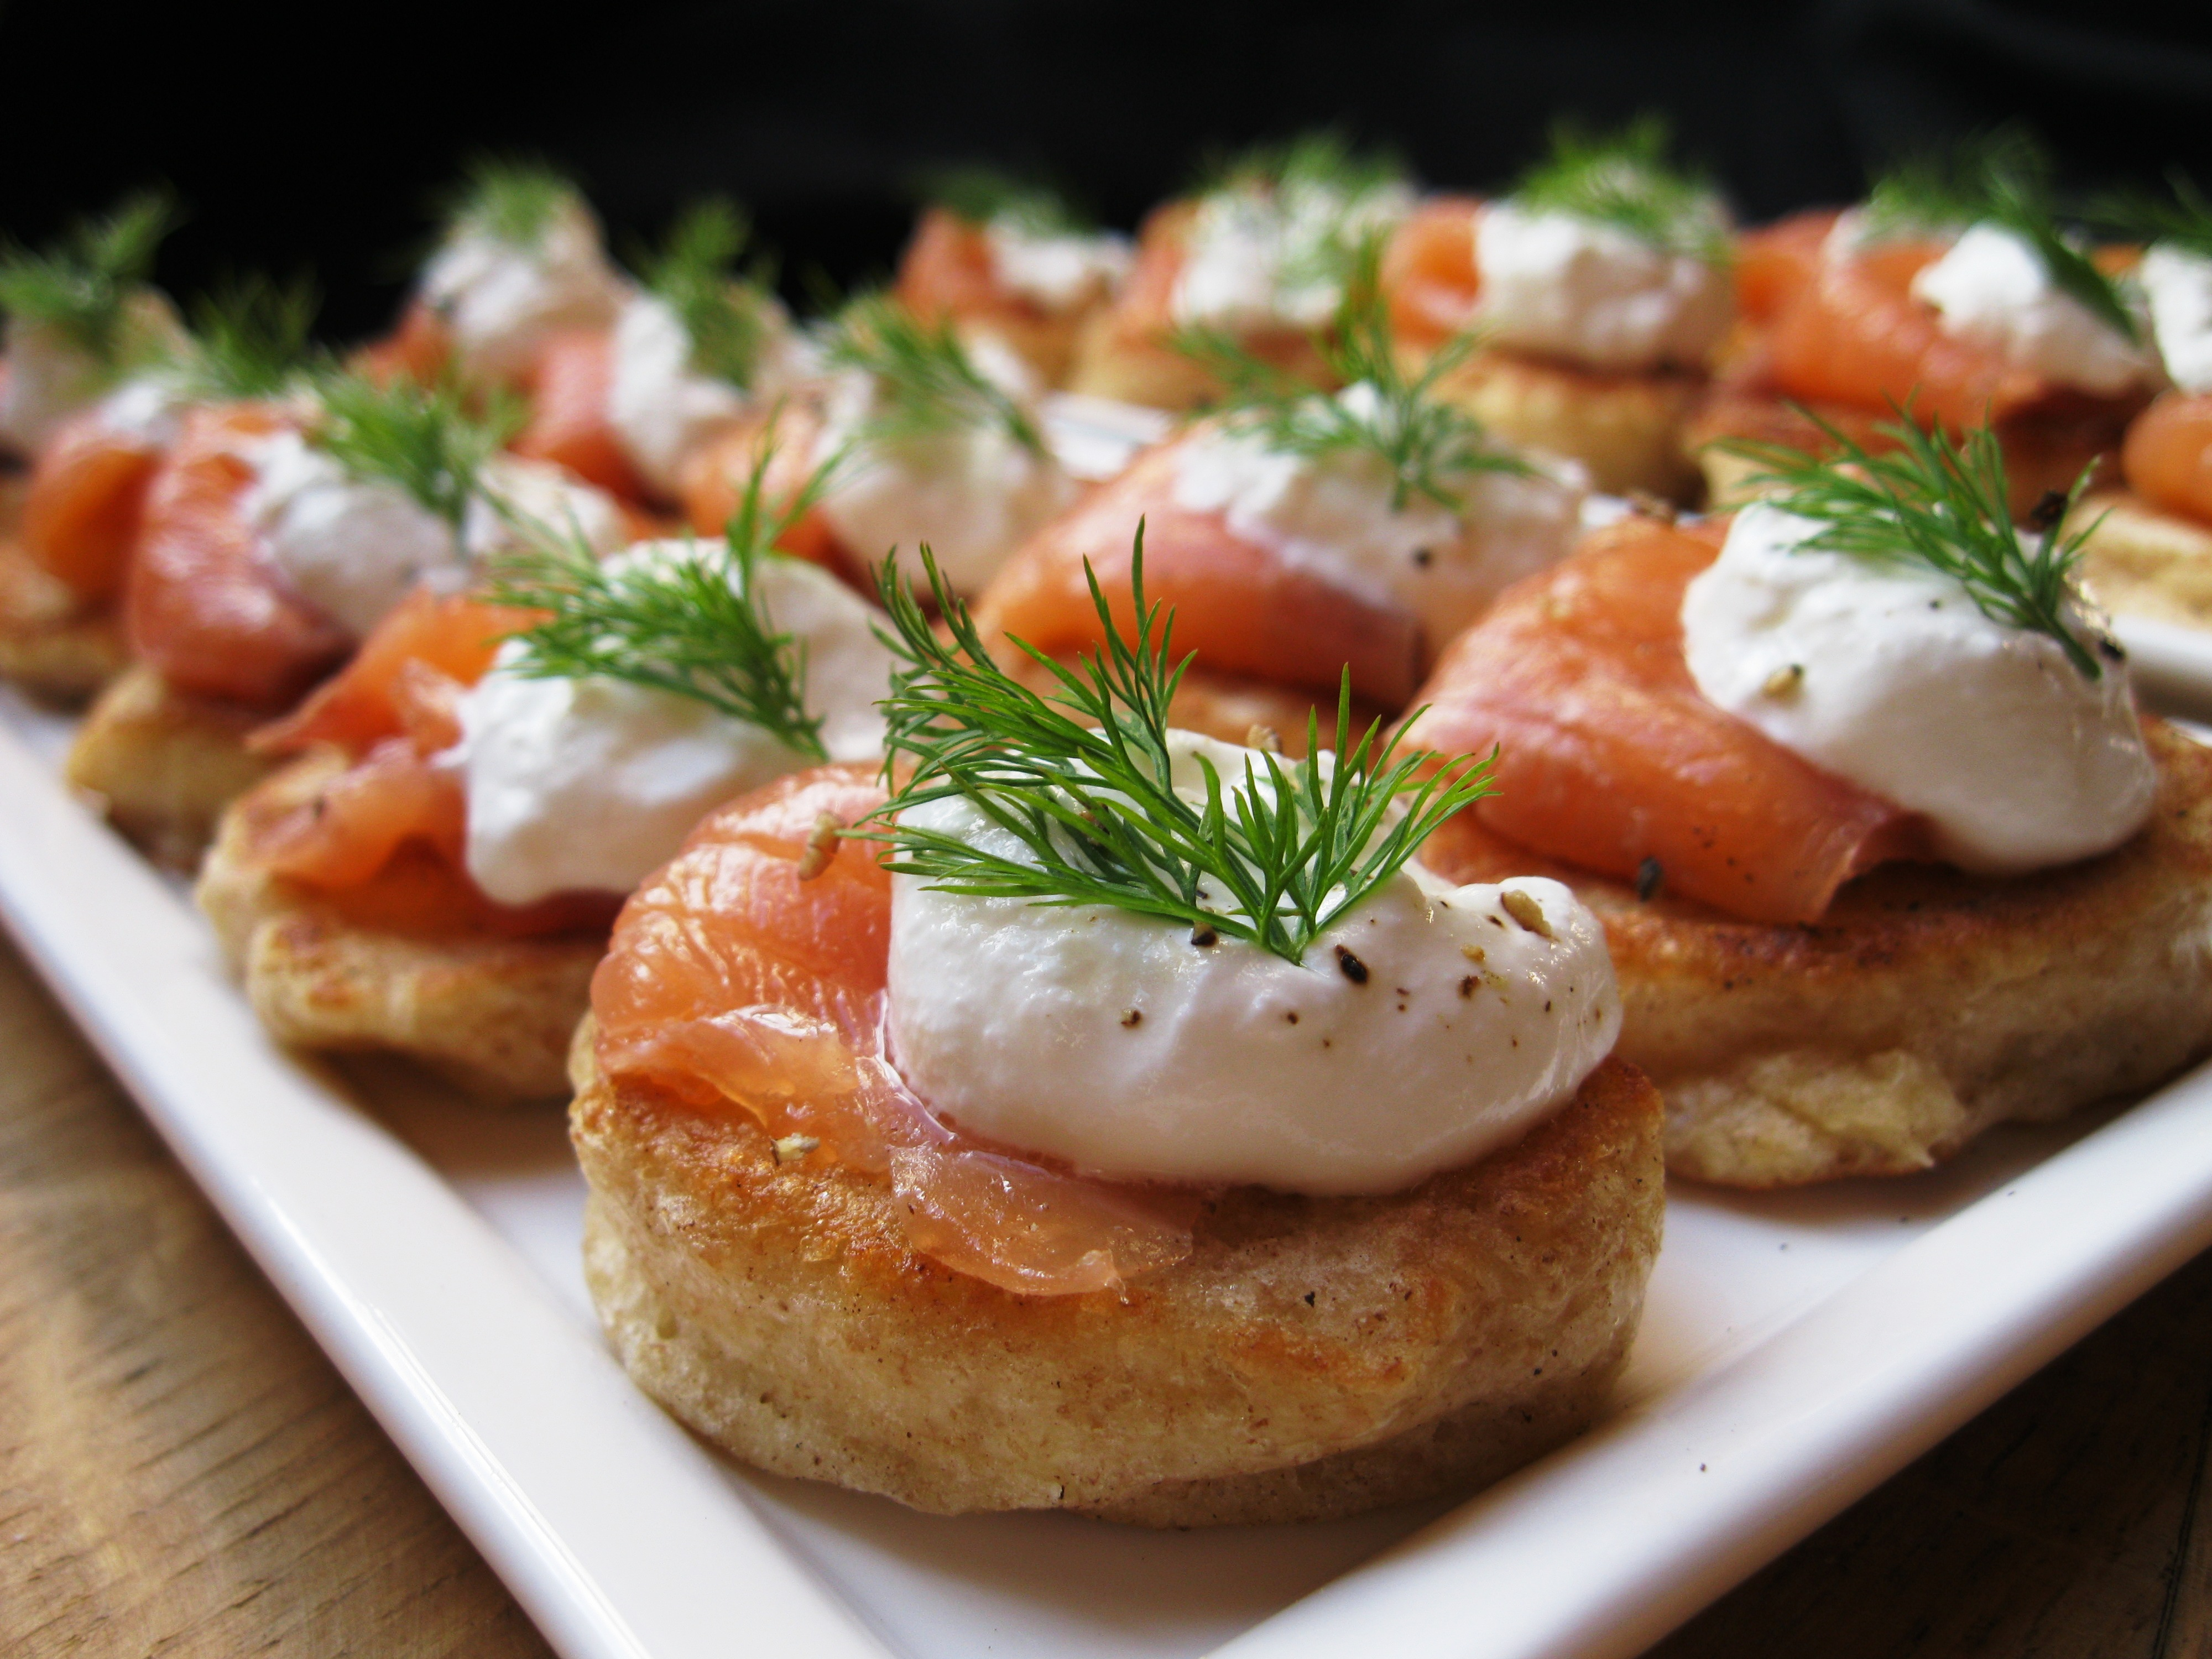 Blini with smoked salmon and dill